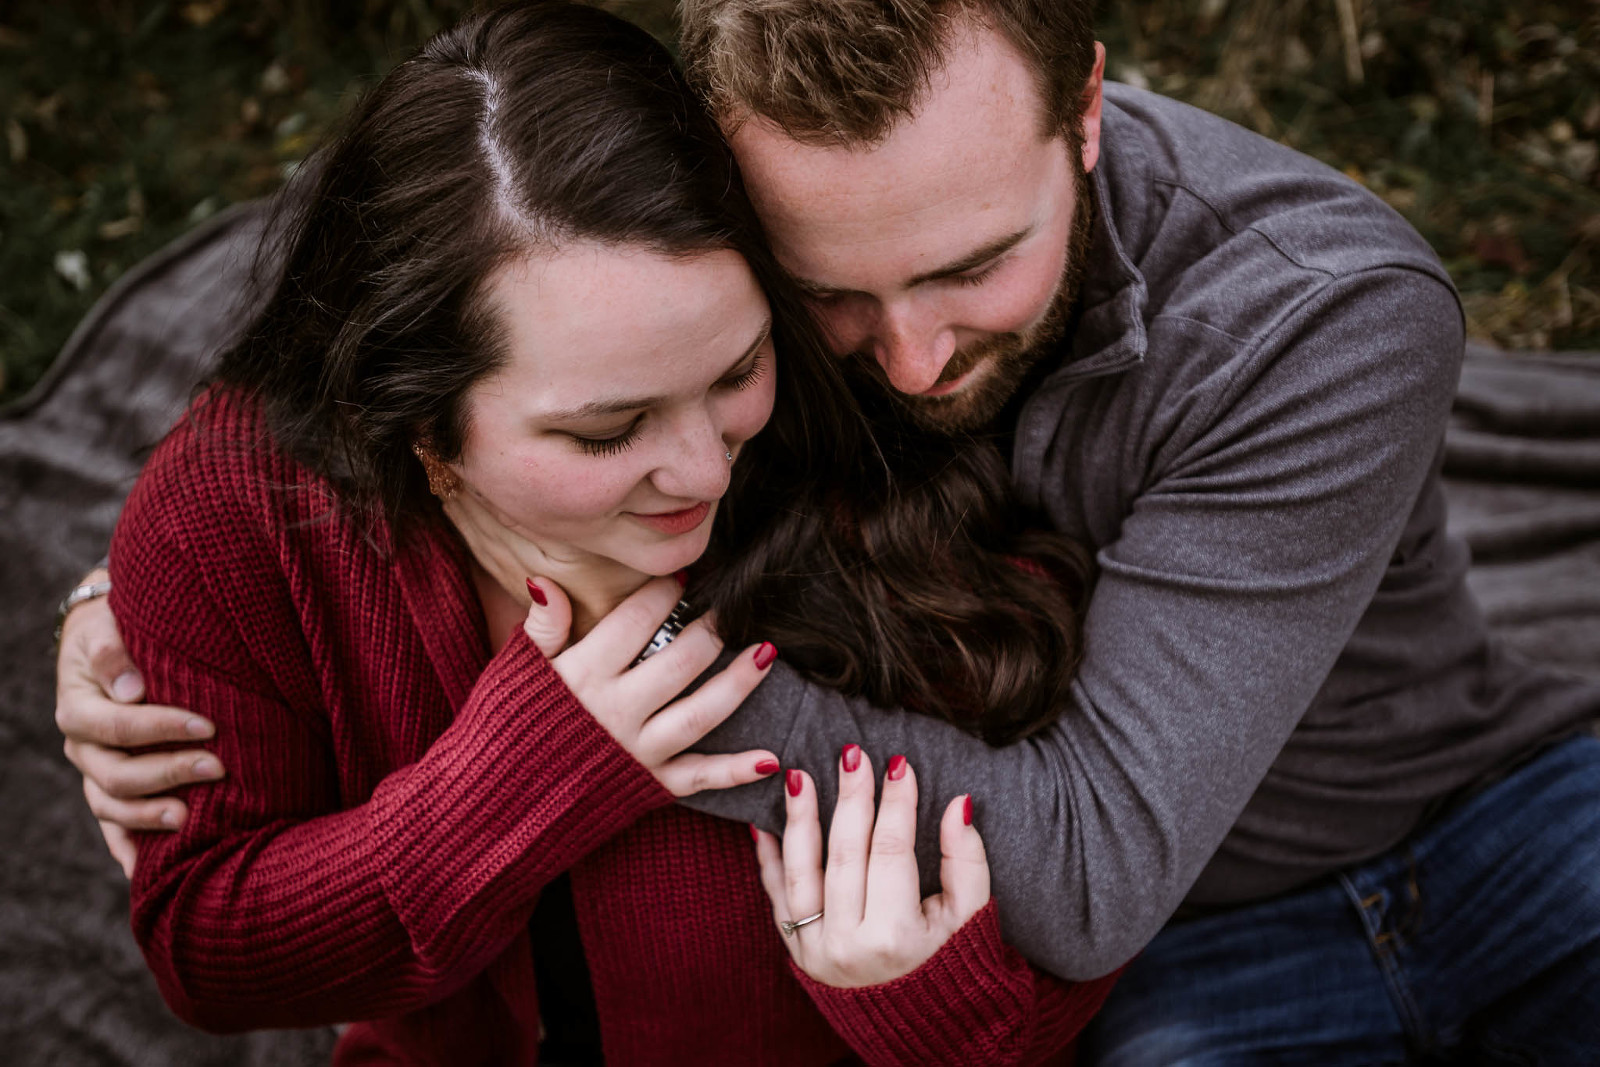 Engaged couple kissing and embracing during outdoor fall engagement session at Salomon Farm Park in Fort Wayne, Indiana by Kasey Wallace Photography